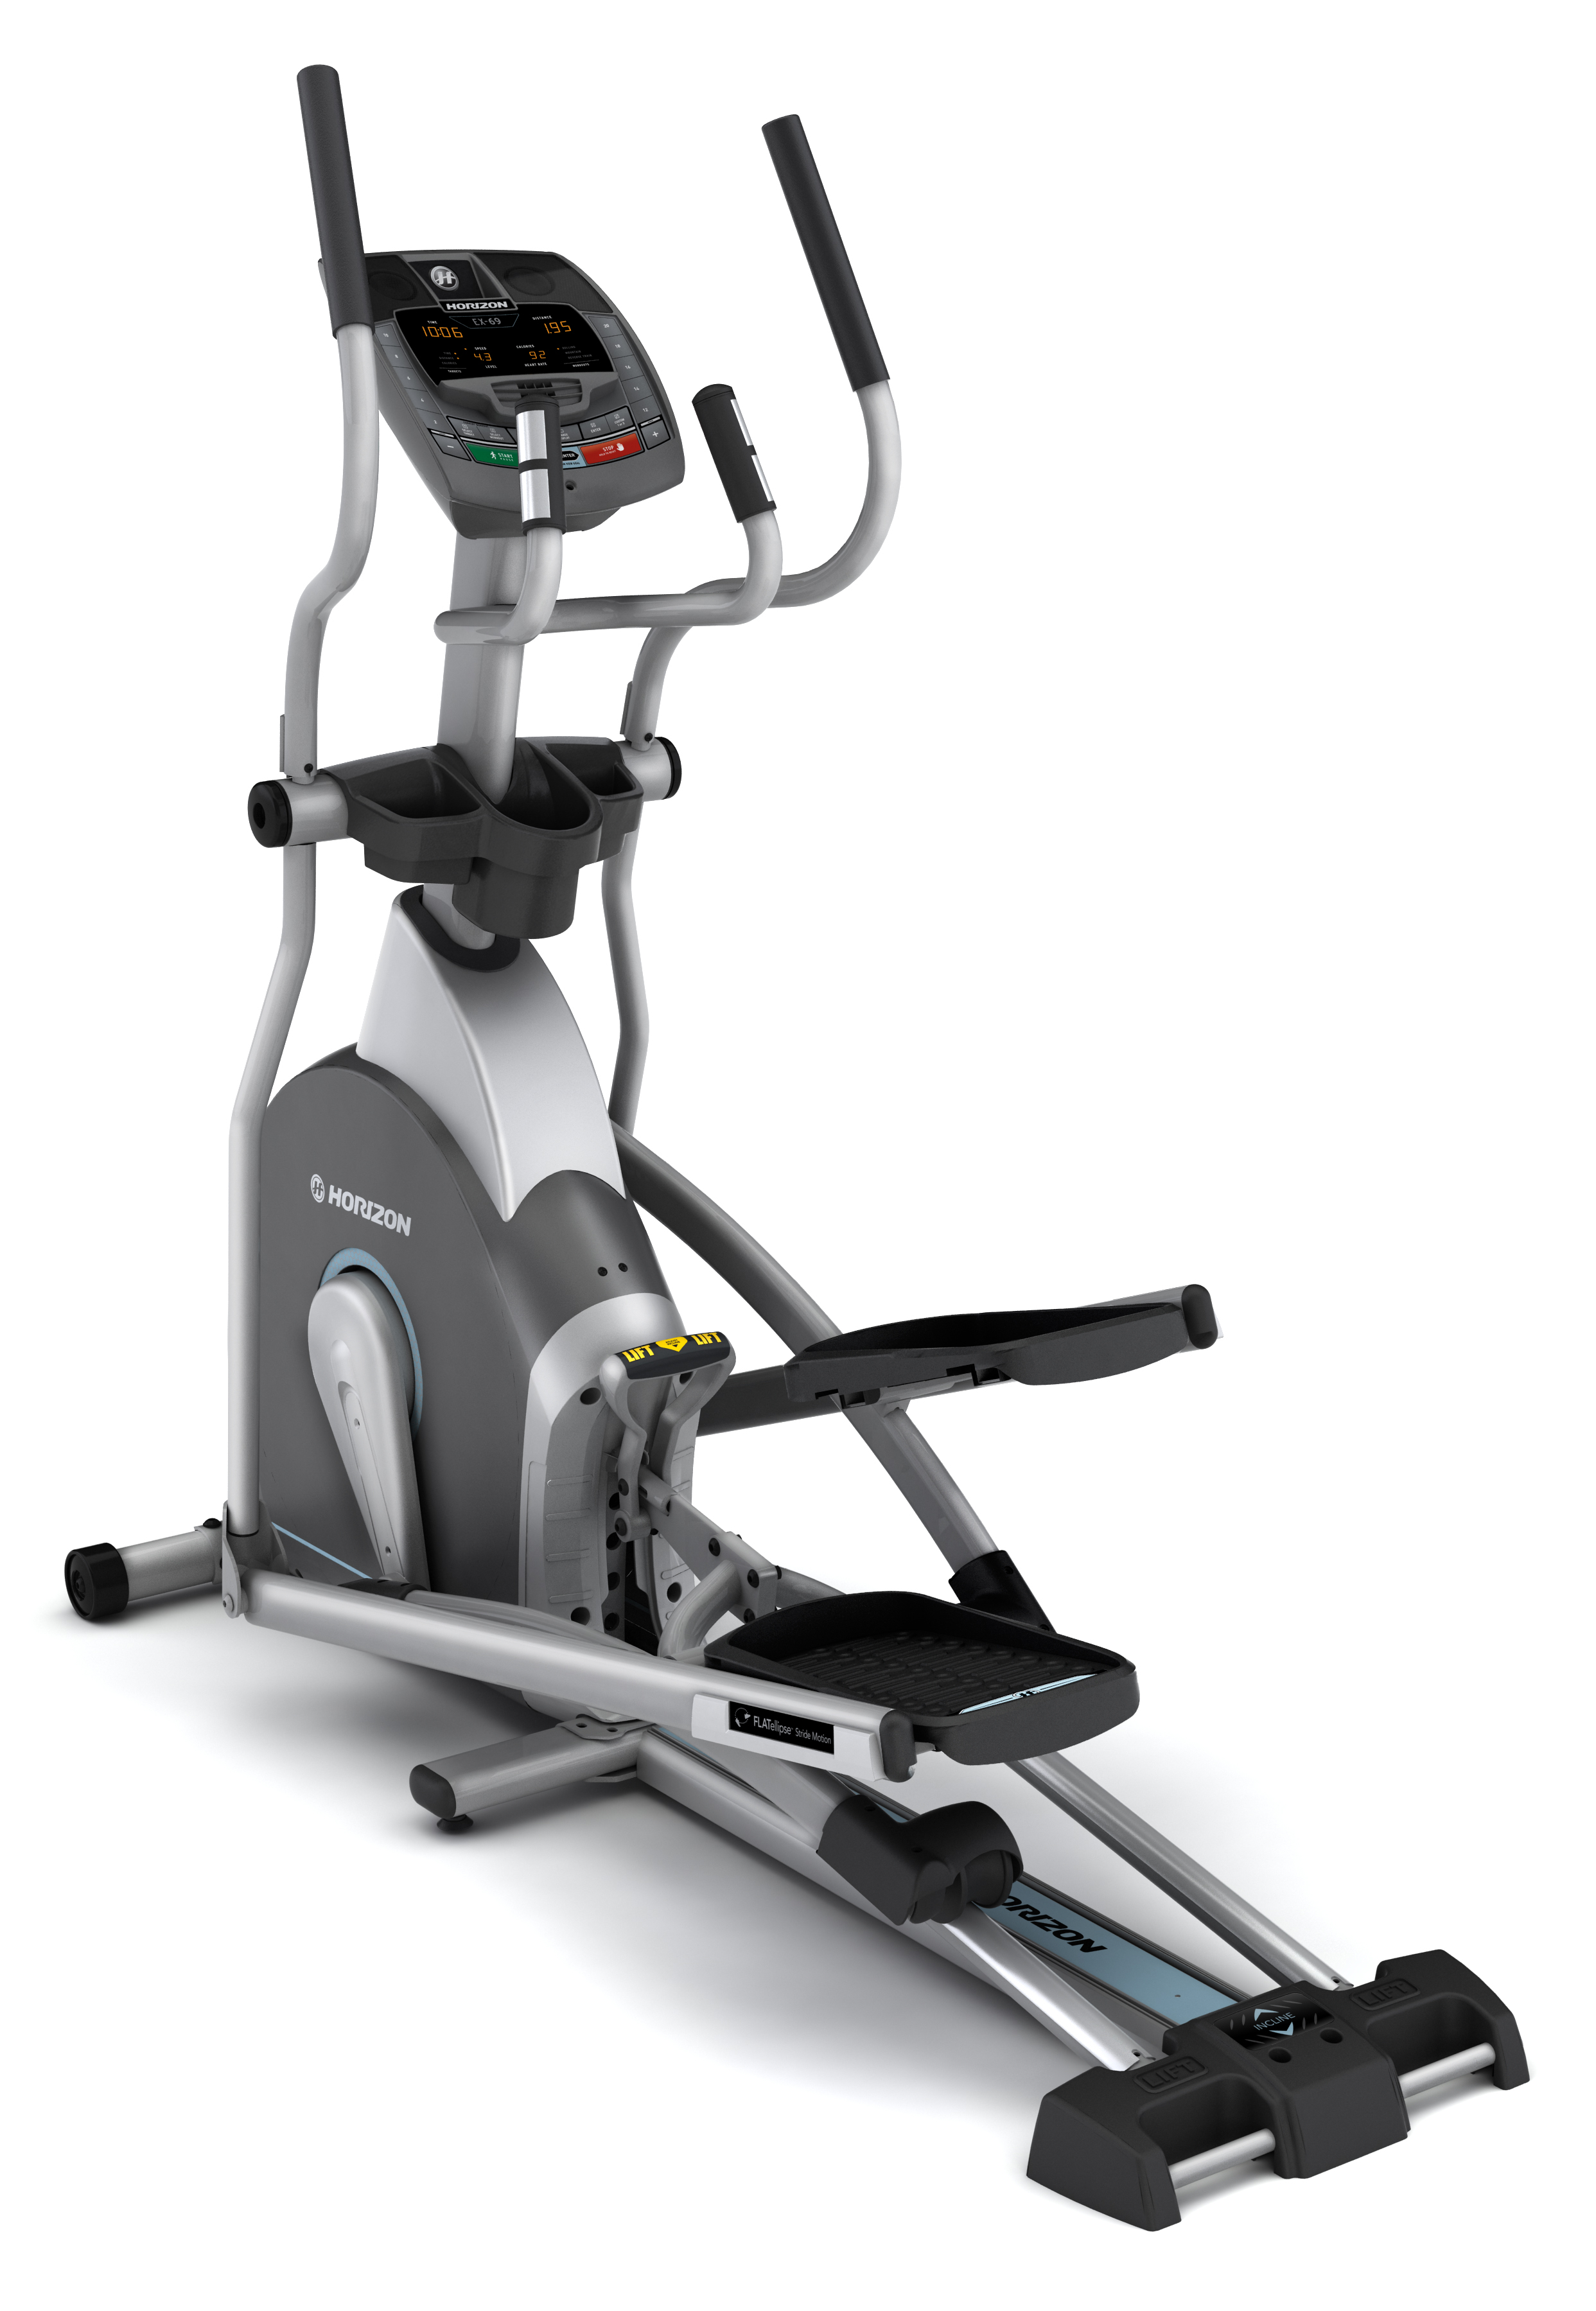 Horizon EX69 Dual Action Elliptical Elliptical Trainer 0 0 Tips On Fighting Cold Sores